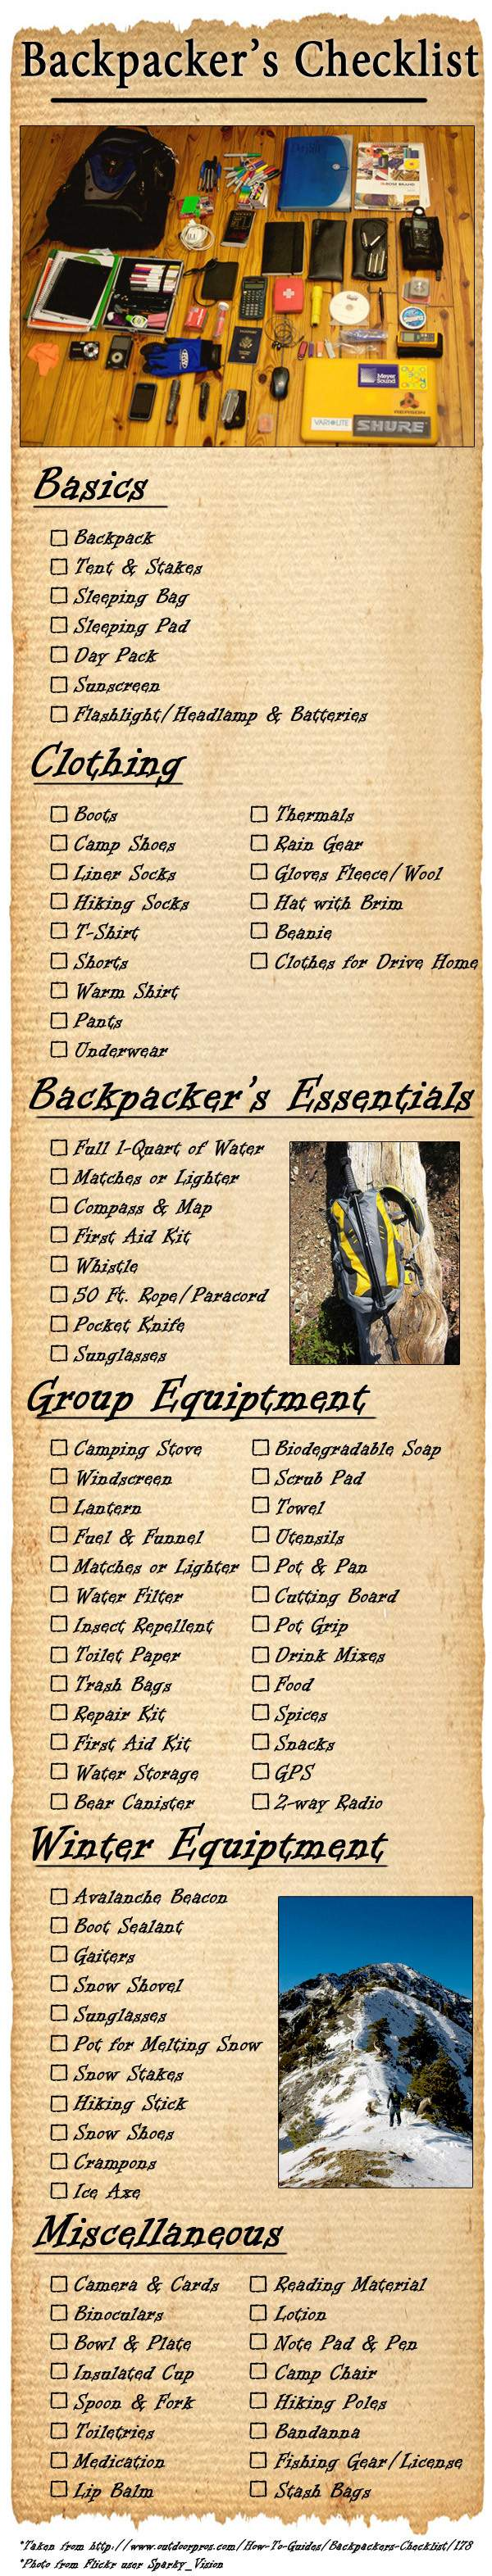 backpackerschecklist_pinay_traveller